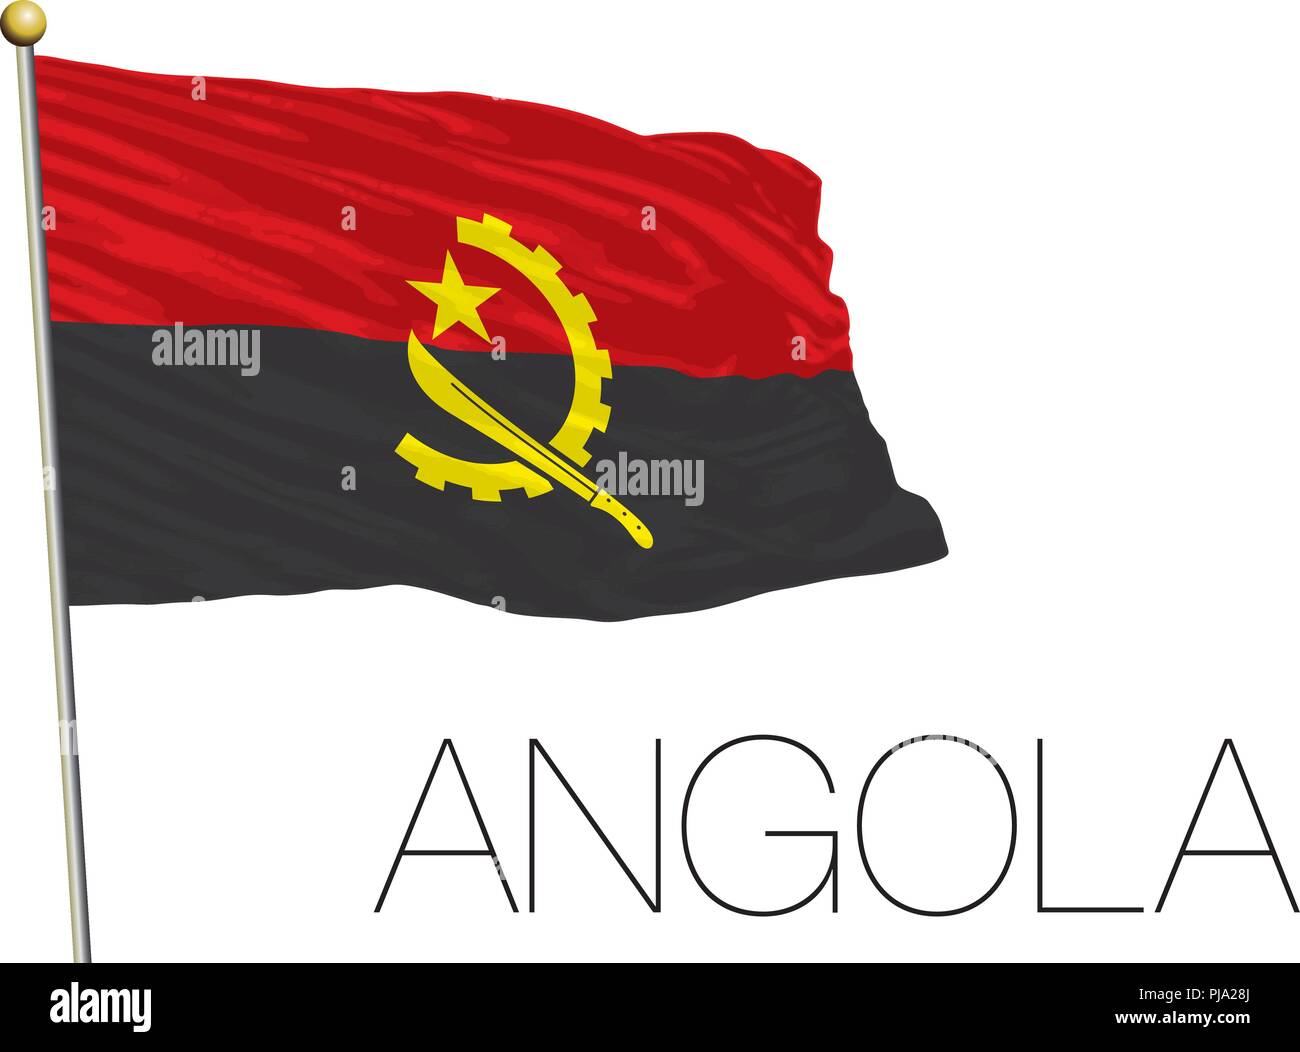 Angola national flag, vector illustration - Stock Image